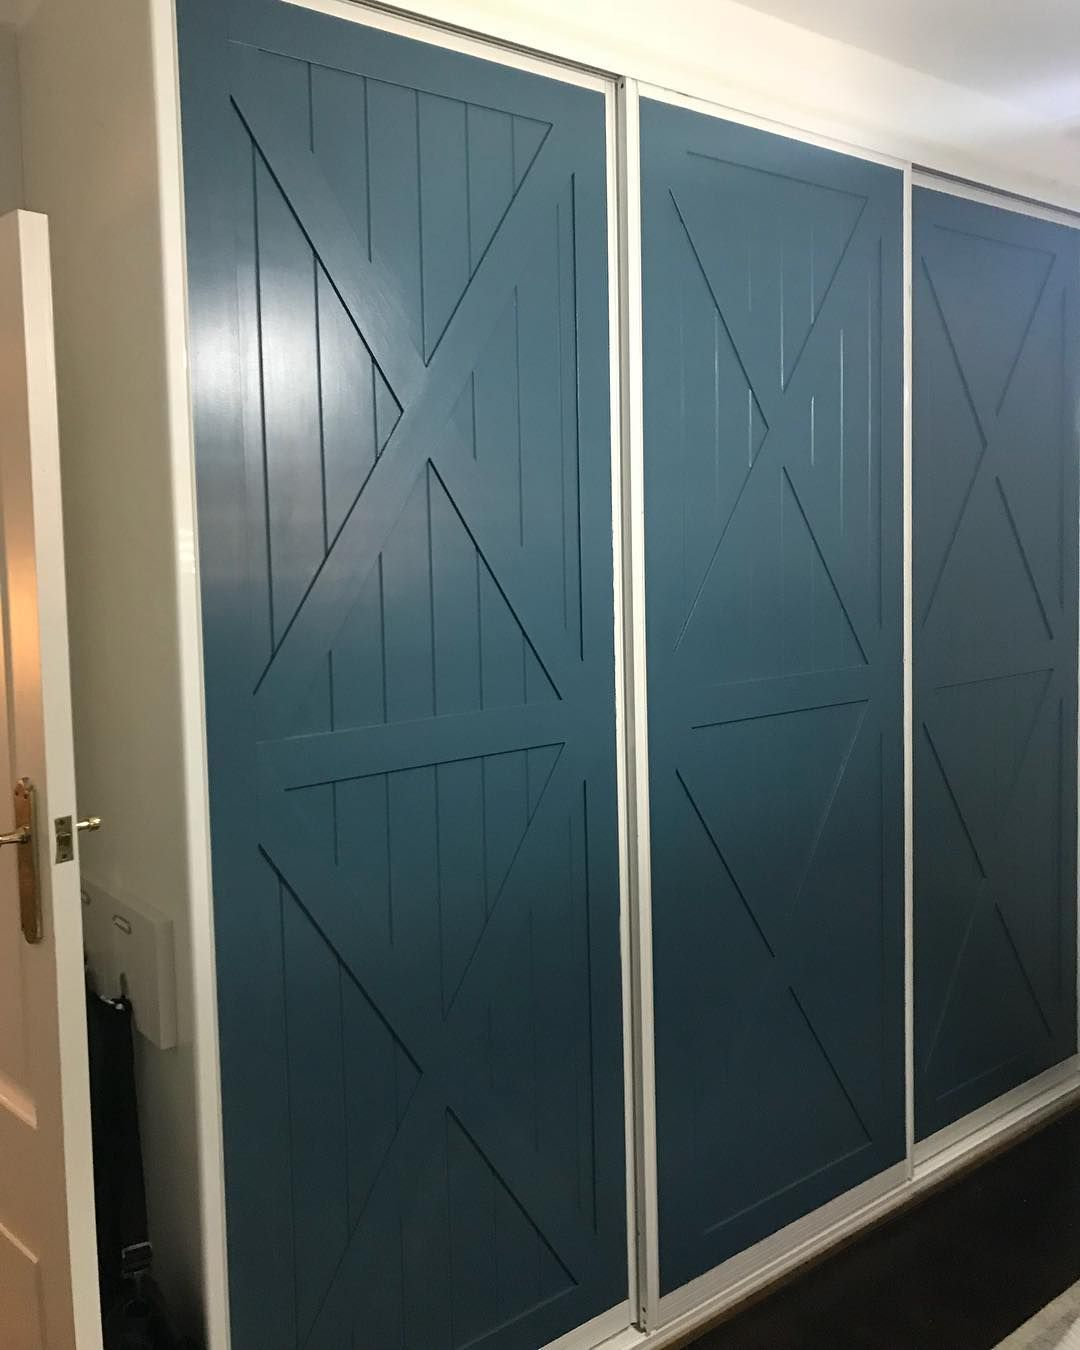 Willow Wood On Instagram We Finished These Wardrobes Off Today The Colour Is Taubmans Blue Demon And We Re Used The Exi Willow Wood Door Frame Blue Demon